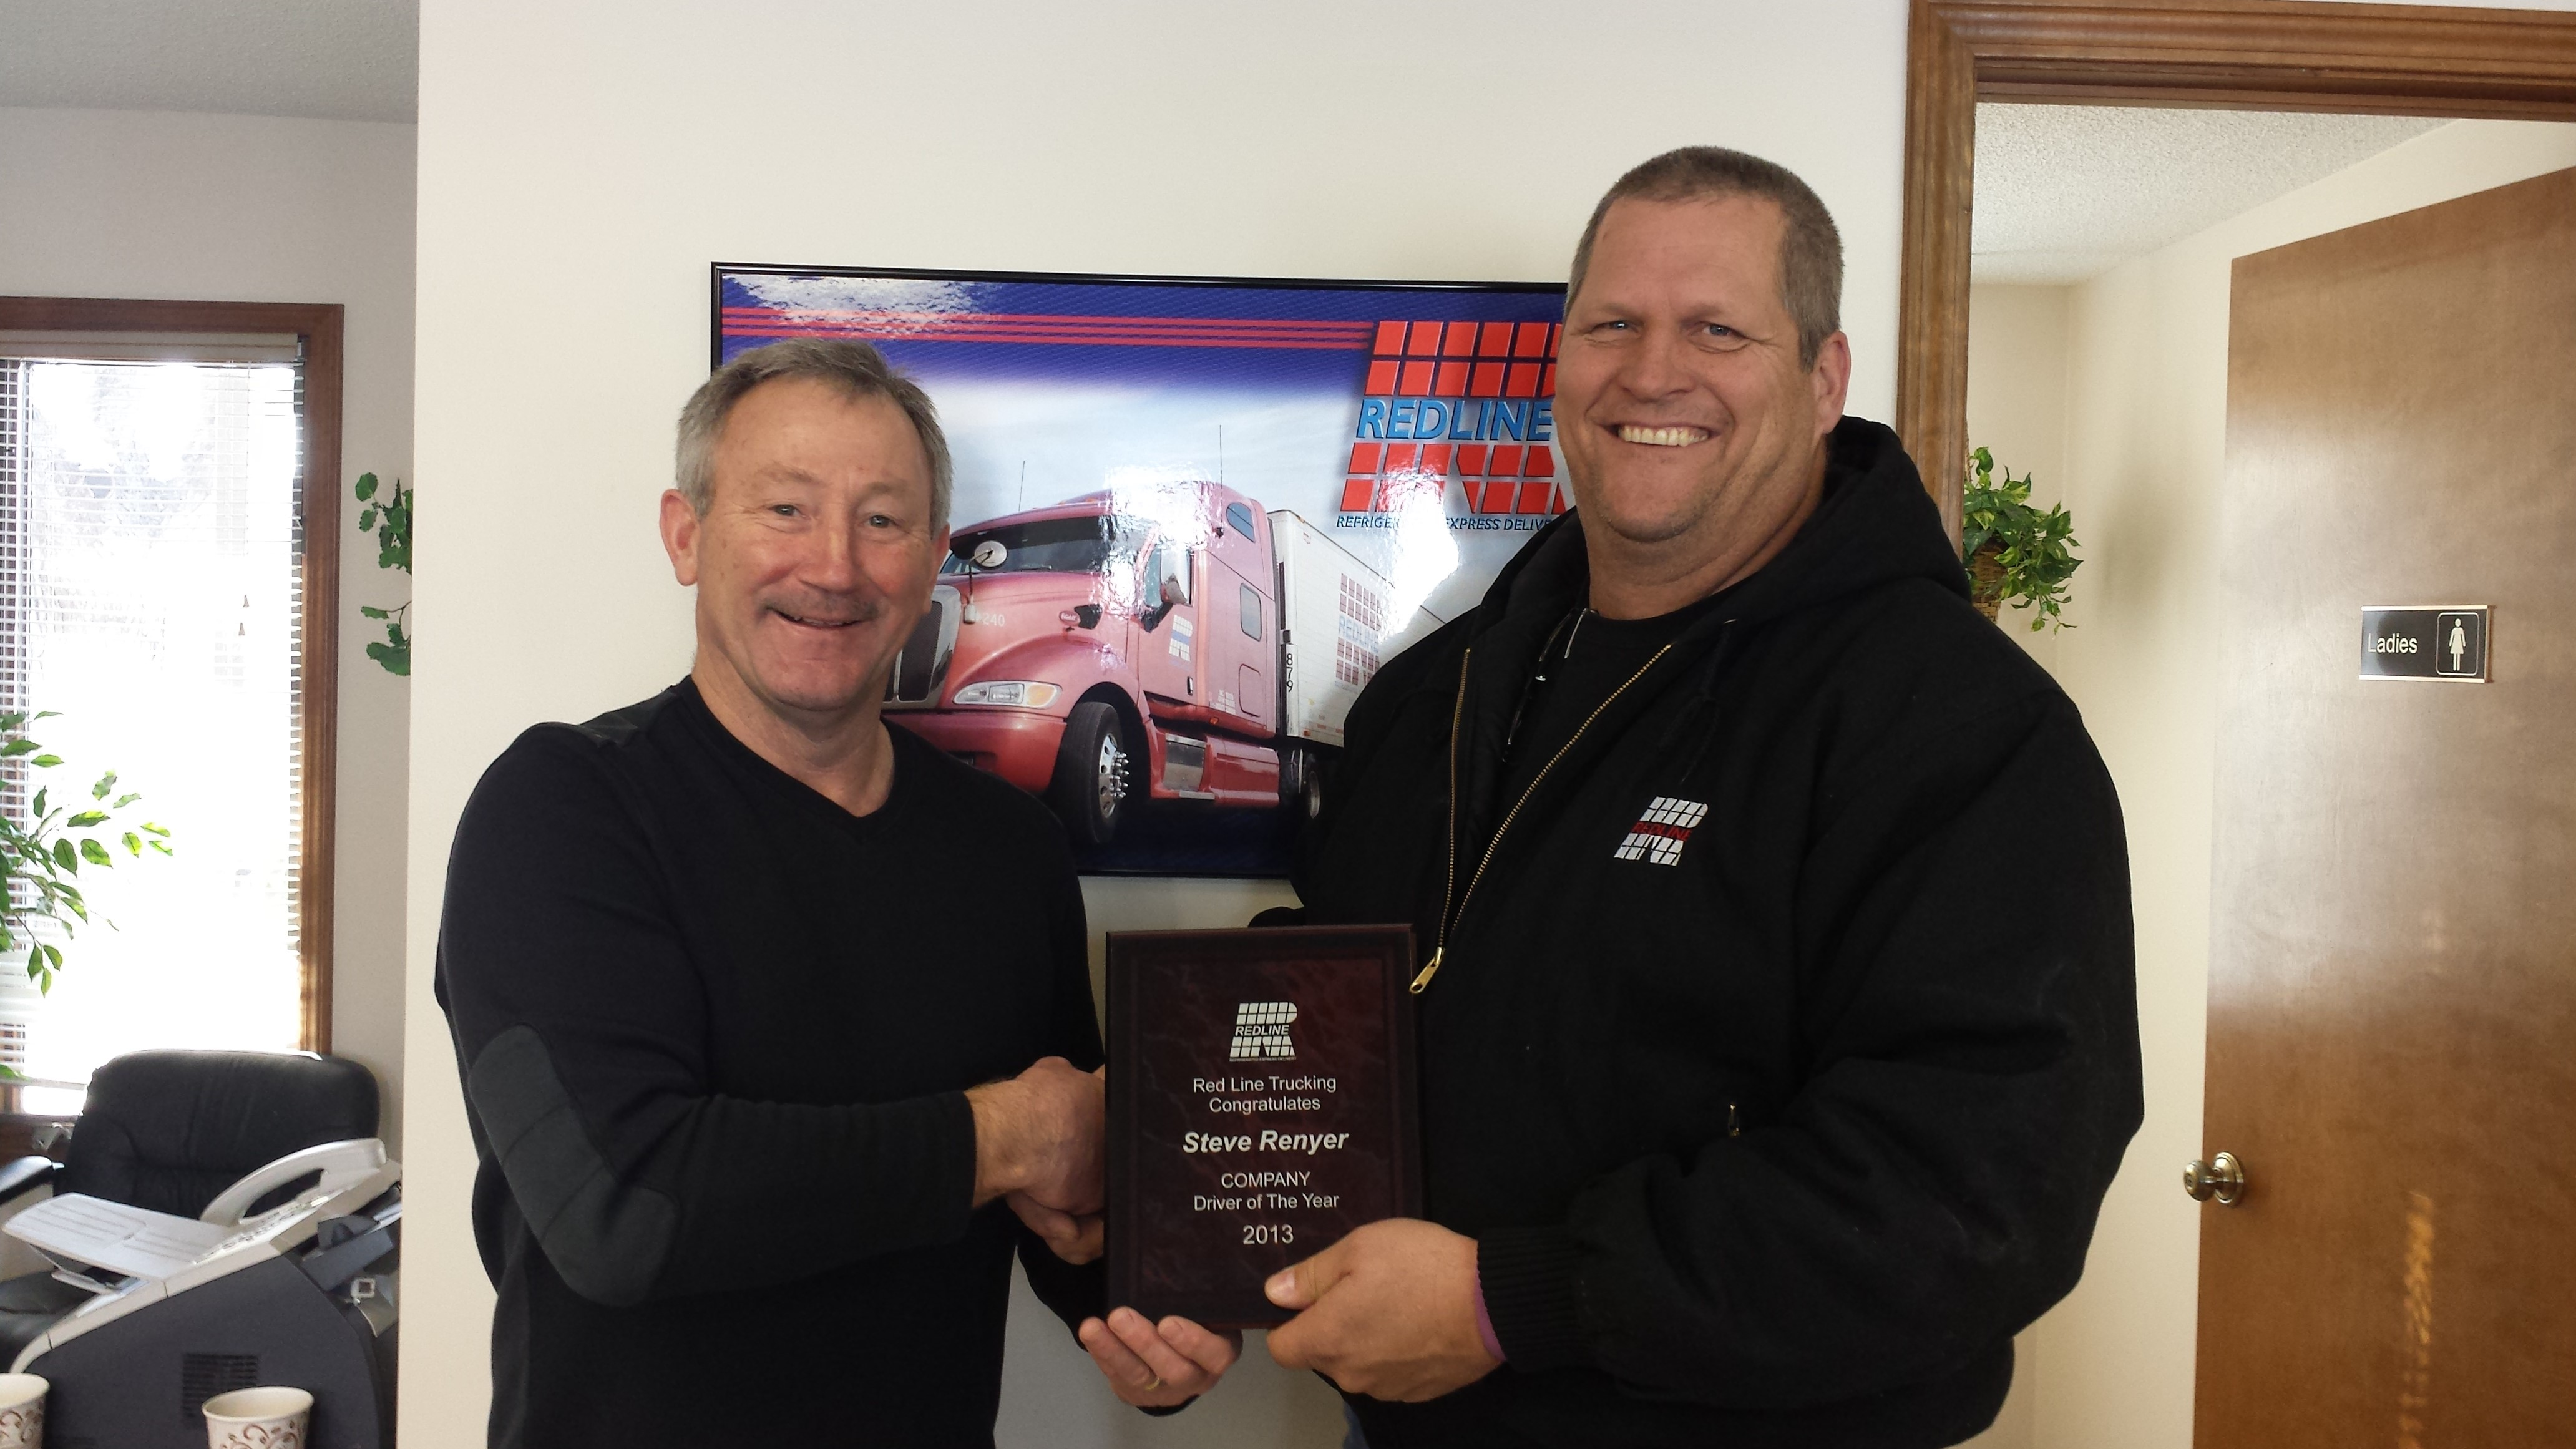 2013 Company Driver of the Year